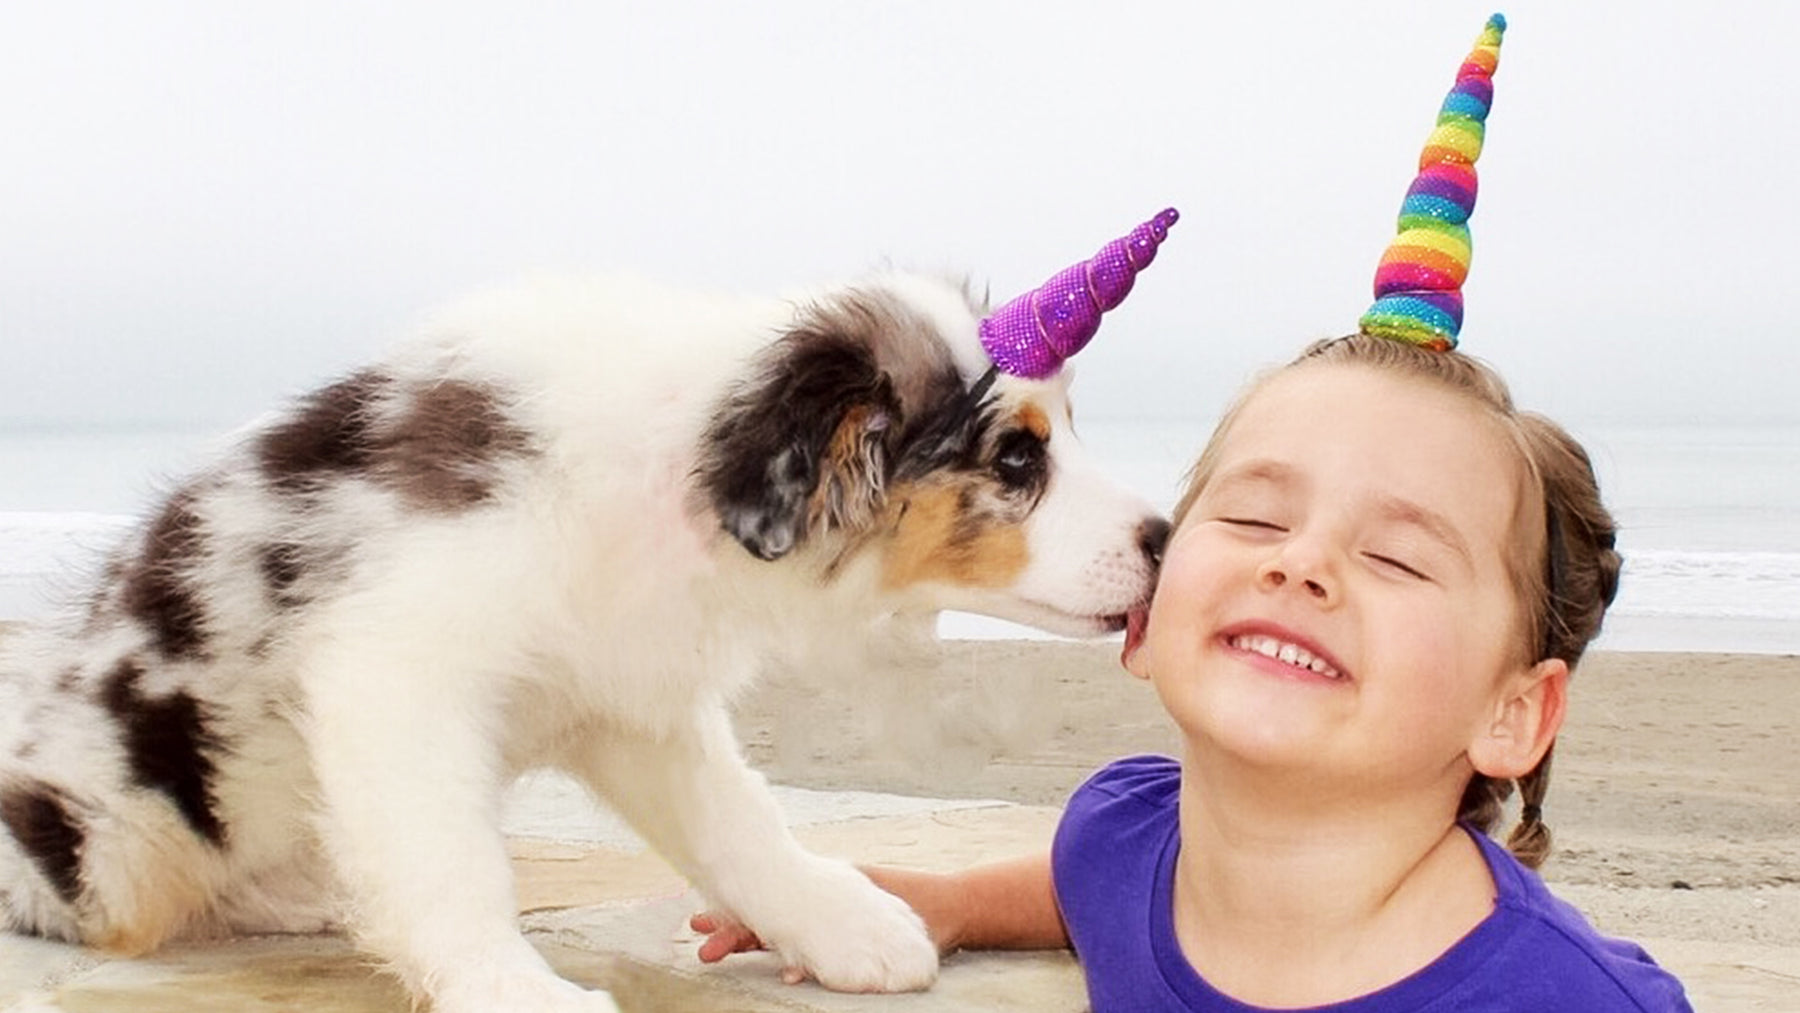 Unicorn horn on girl and puppy